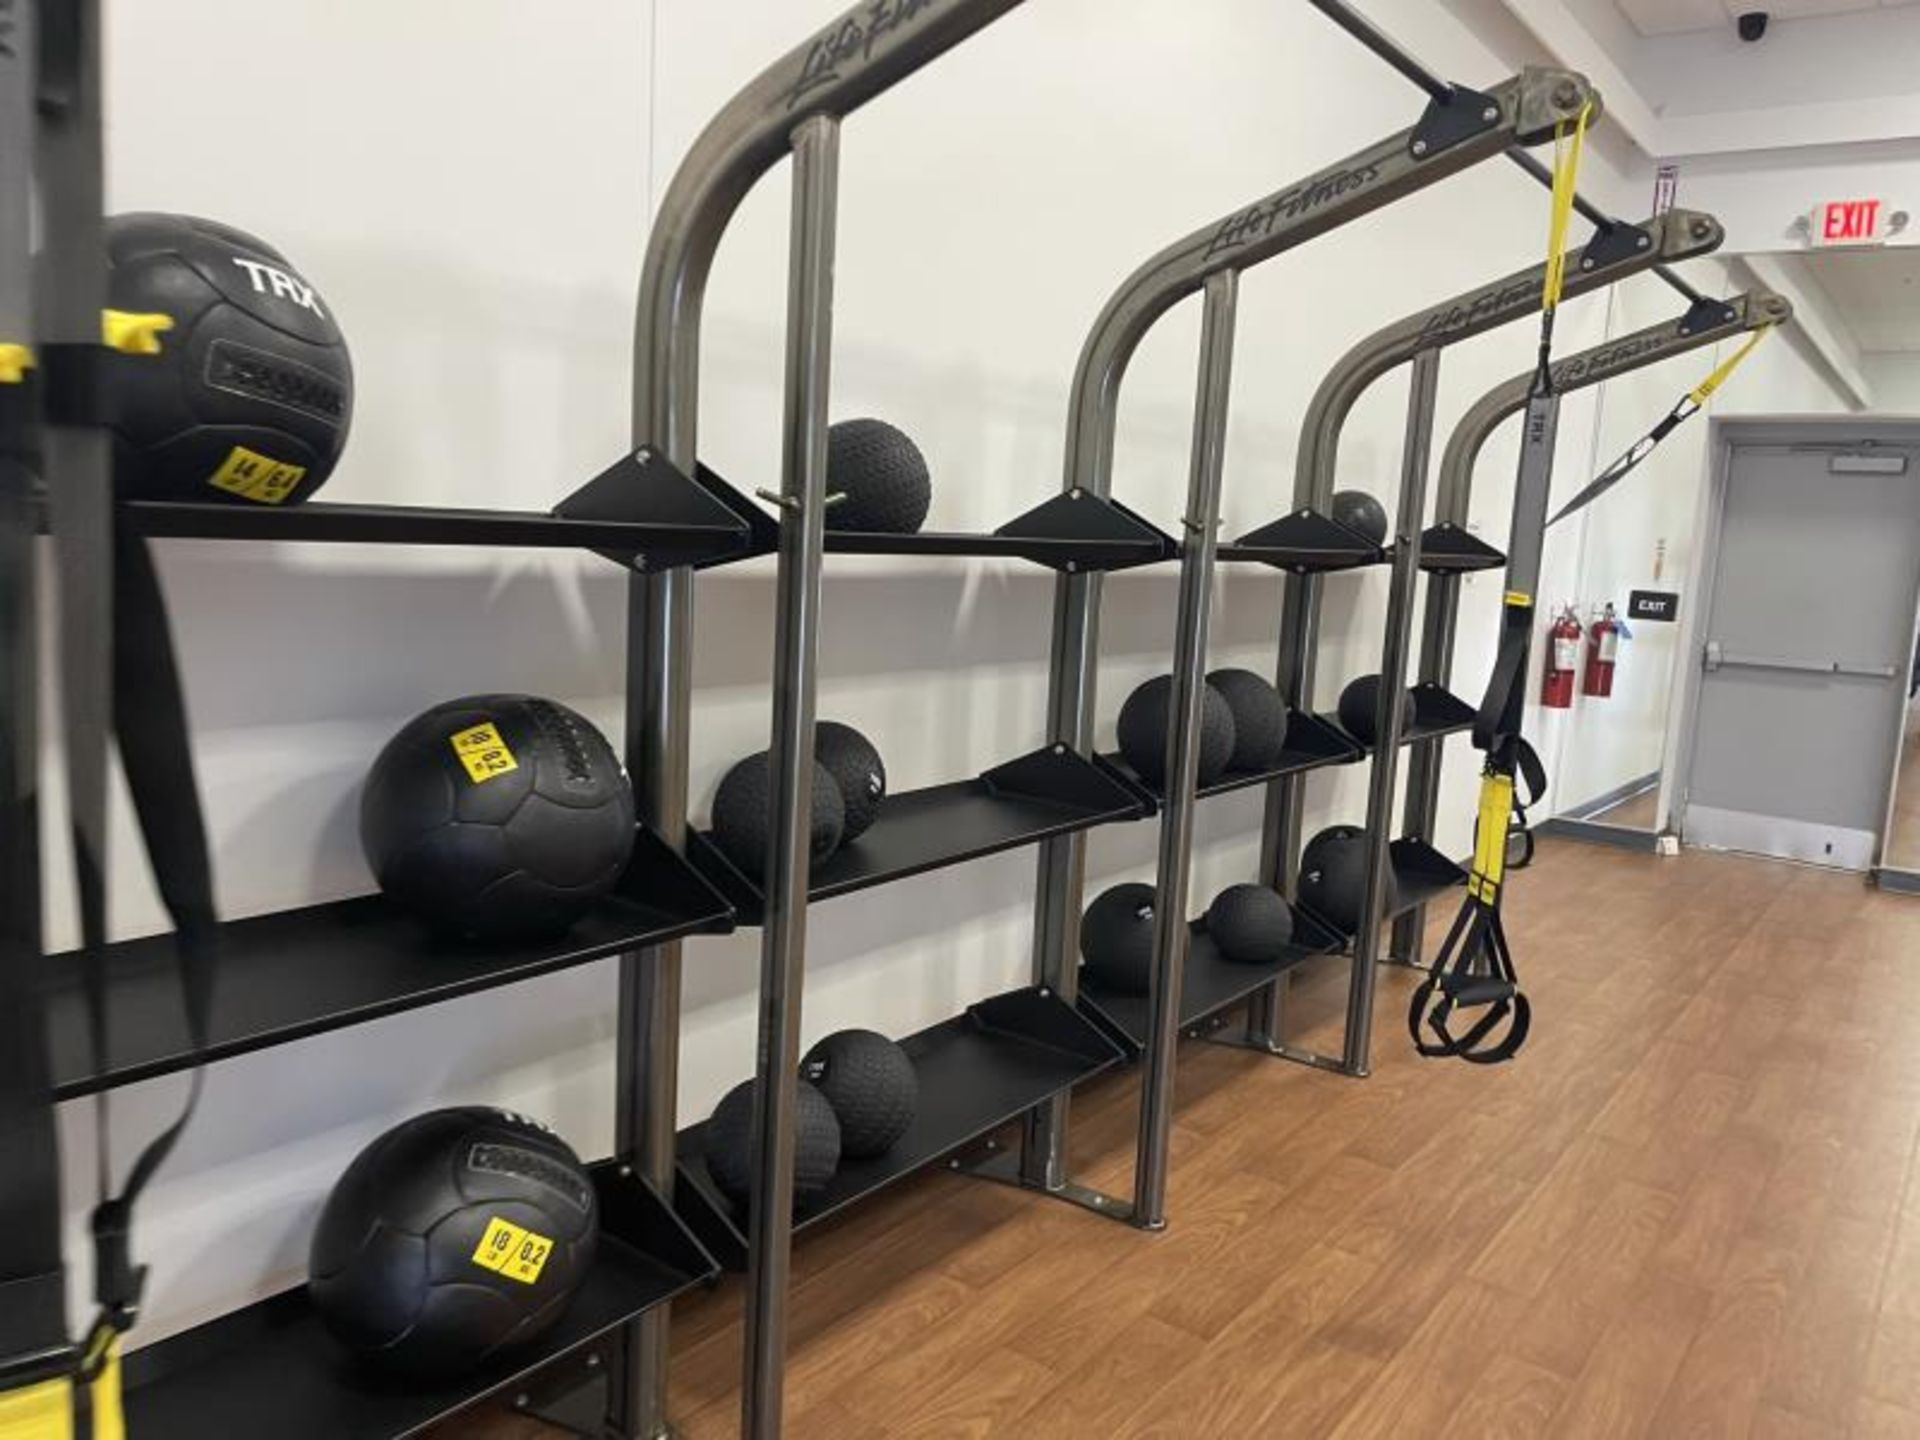 Life Fitness SYNRGY Wall Rack Training System, TRX Training System Straps, Rope, Balls - Image 4 of 8